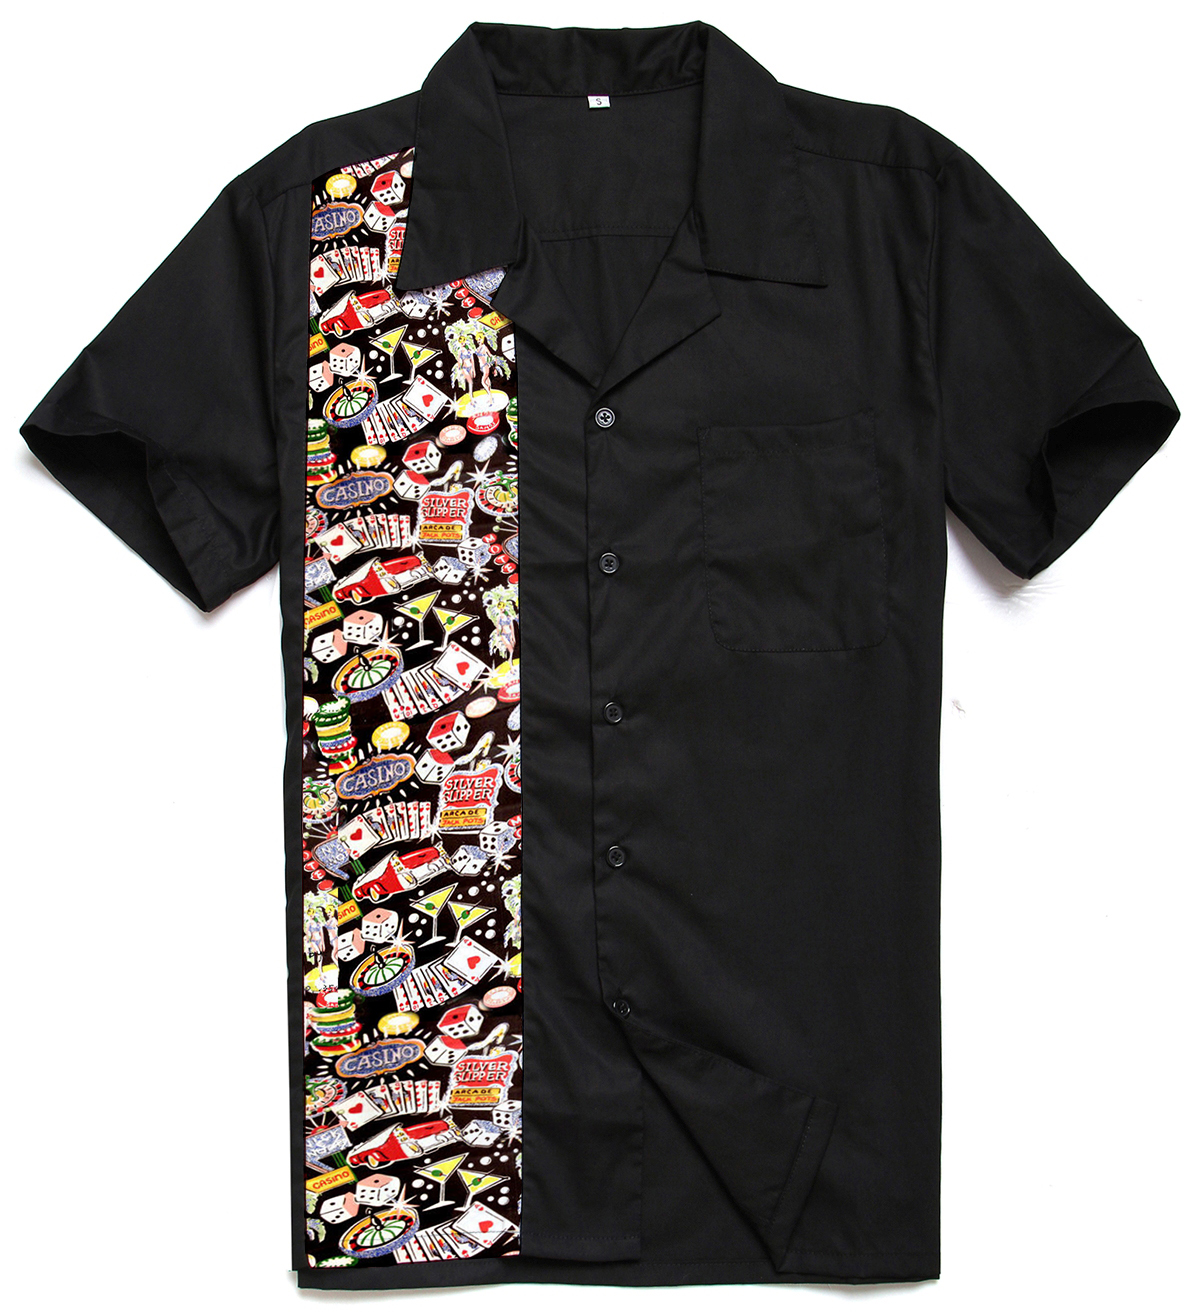 Shirt design china - Candow Look 2017 New Designs Top Brand Cotton Cute Casino Print Rockabilly Hiphop Vintage 40s 50s